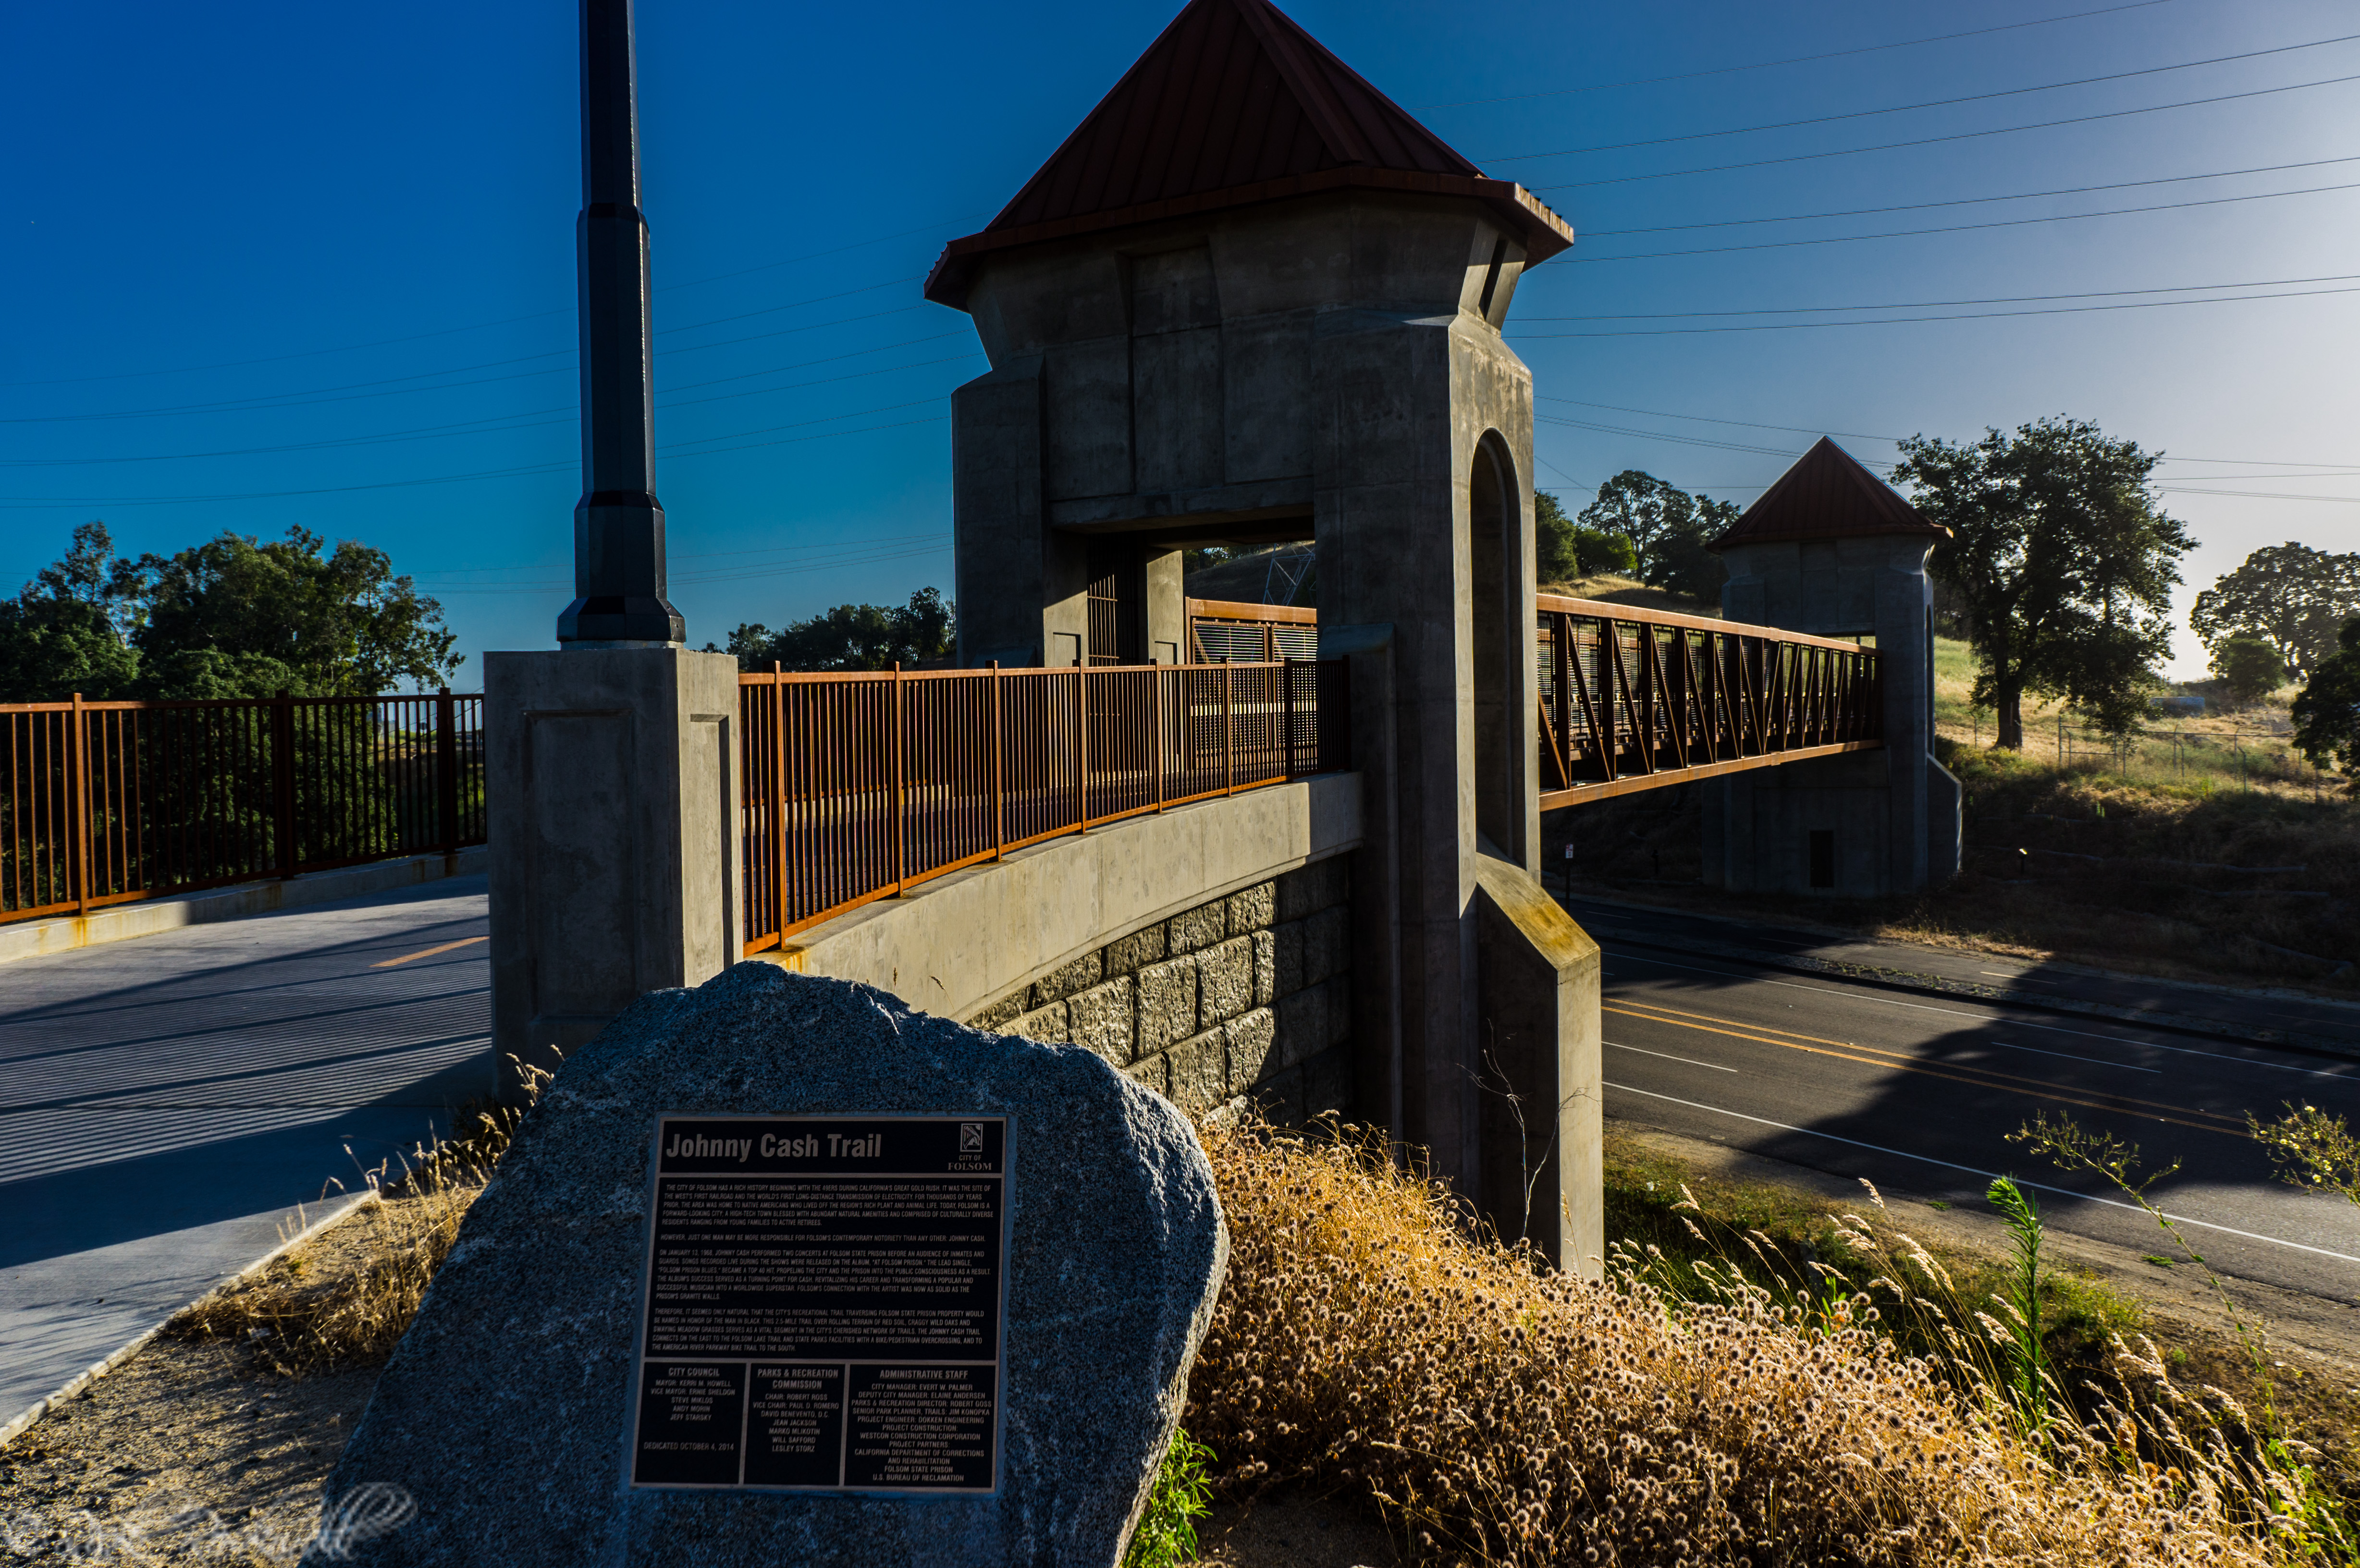 Photo of Johnny Cash Trail: Walk the Line across the overpass